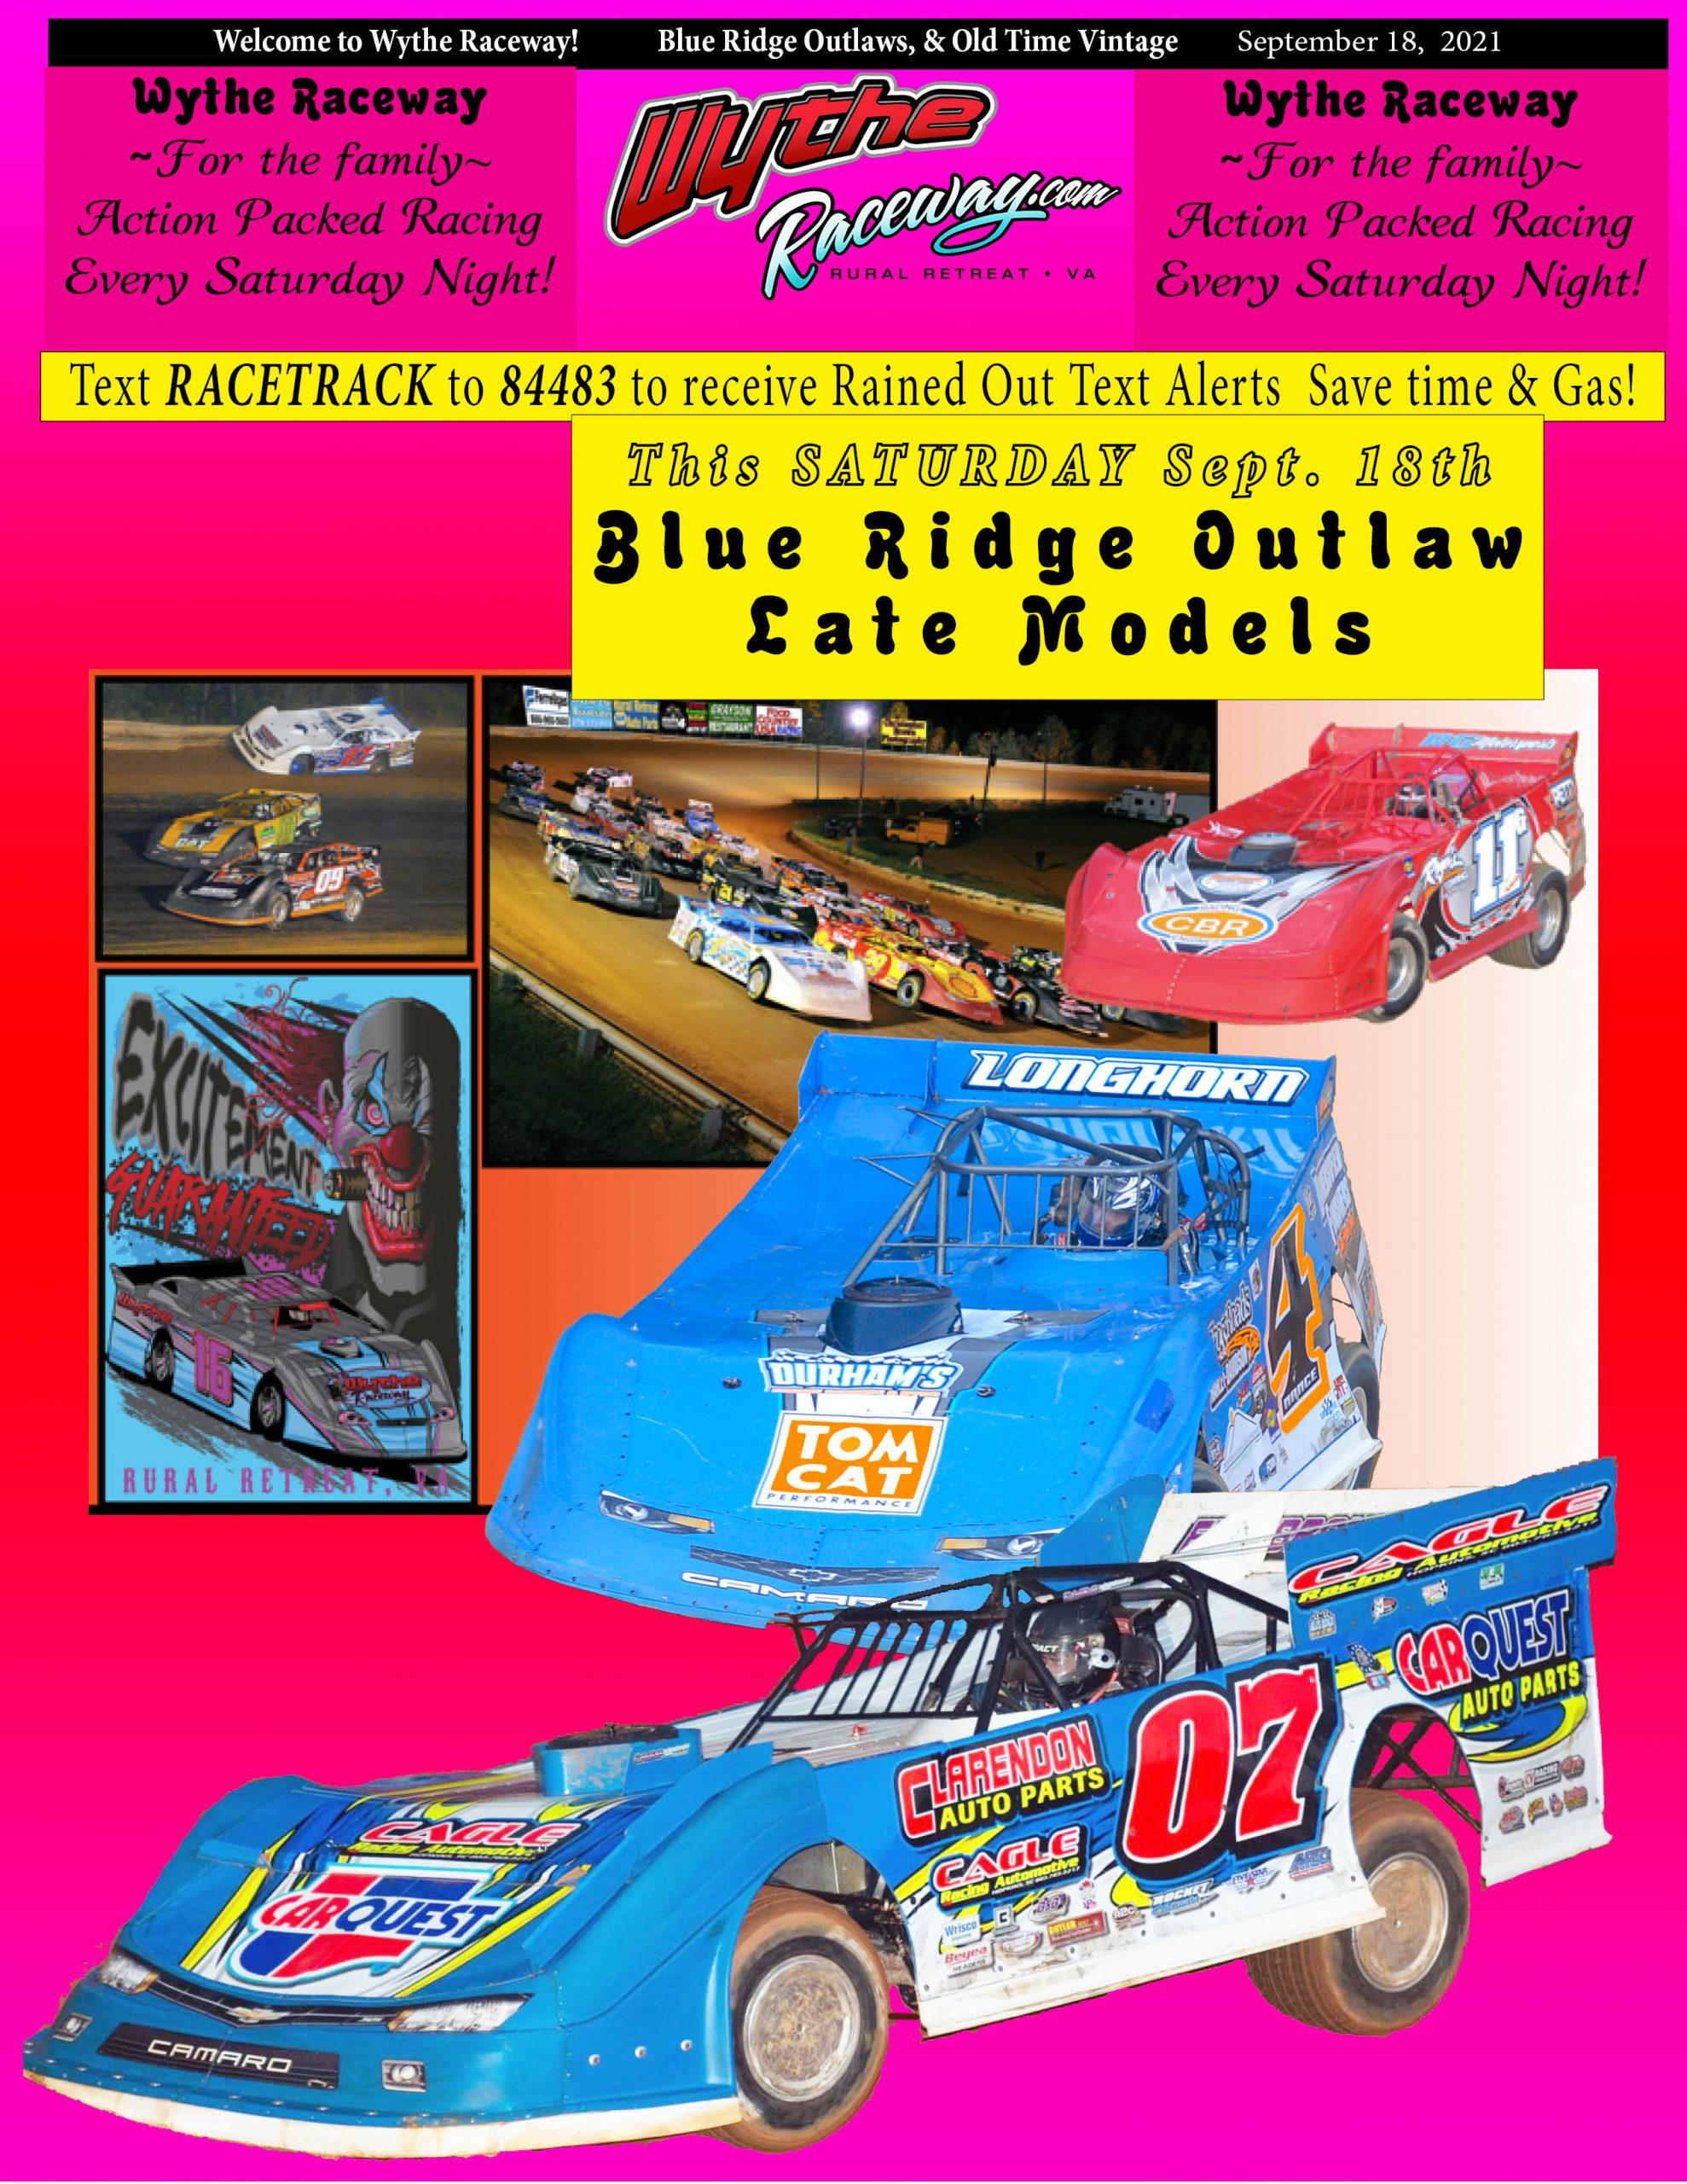 Sept. 25: BLUE RIDGE OUTLAW & Old Time Vintage Racing Schedule of Events